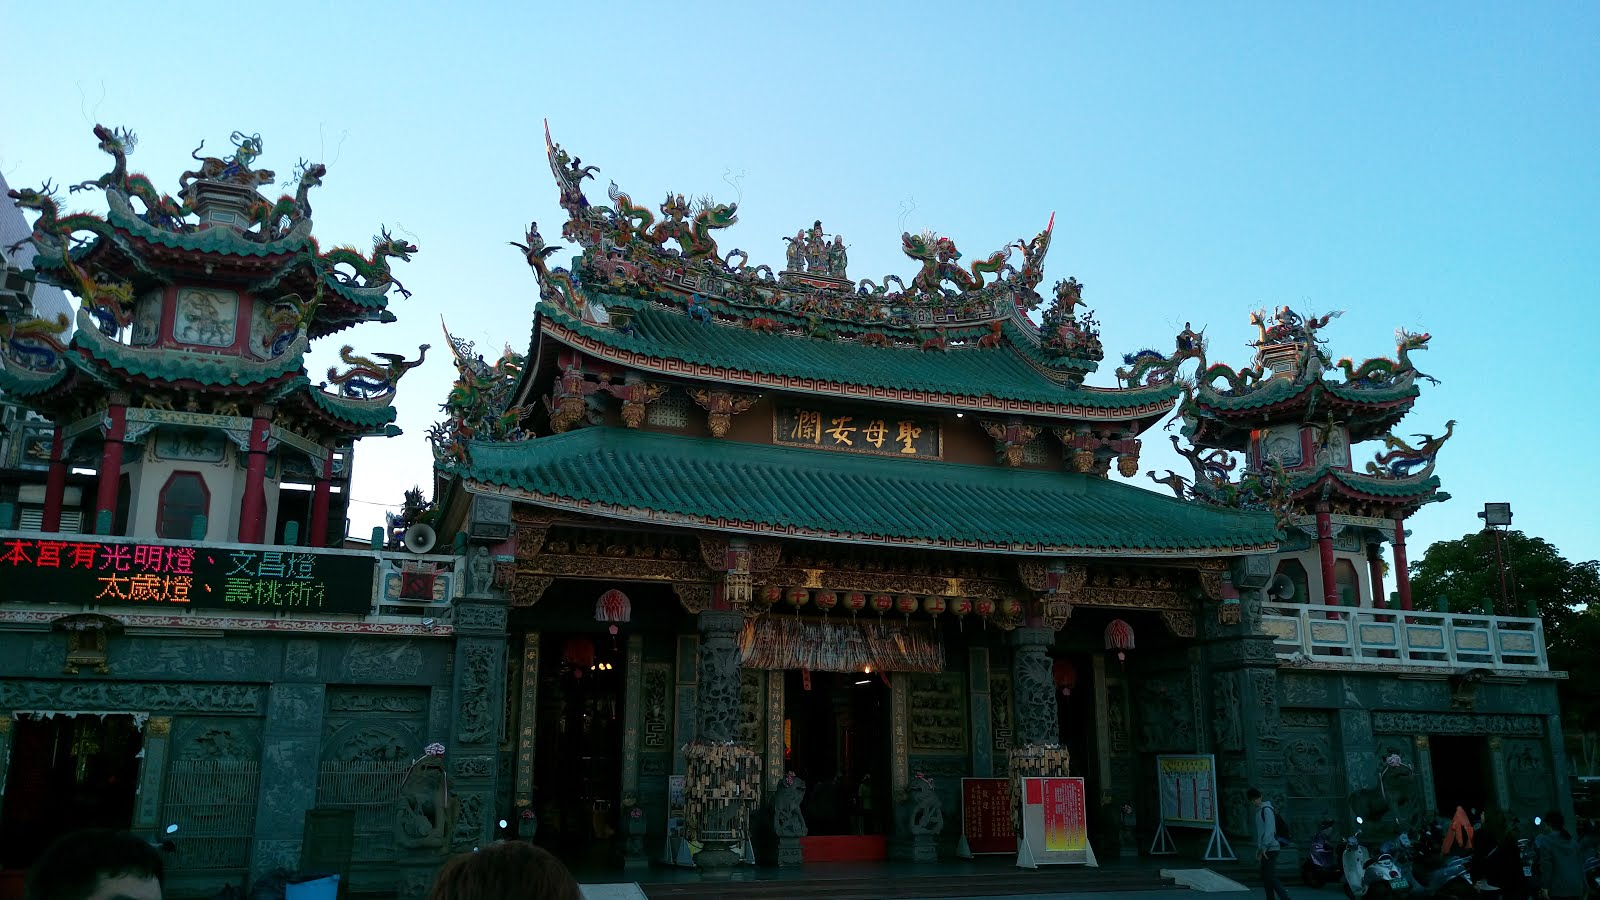 Had been fortunate to learn, train and grow under the pros (Mazhu temple, Taiwan)